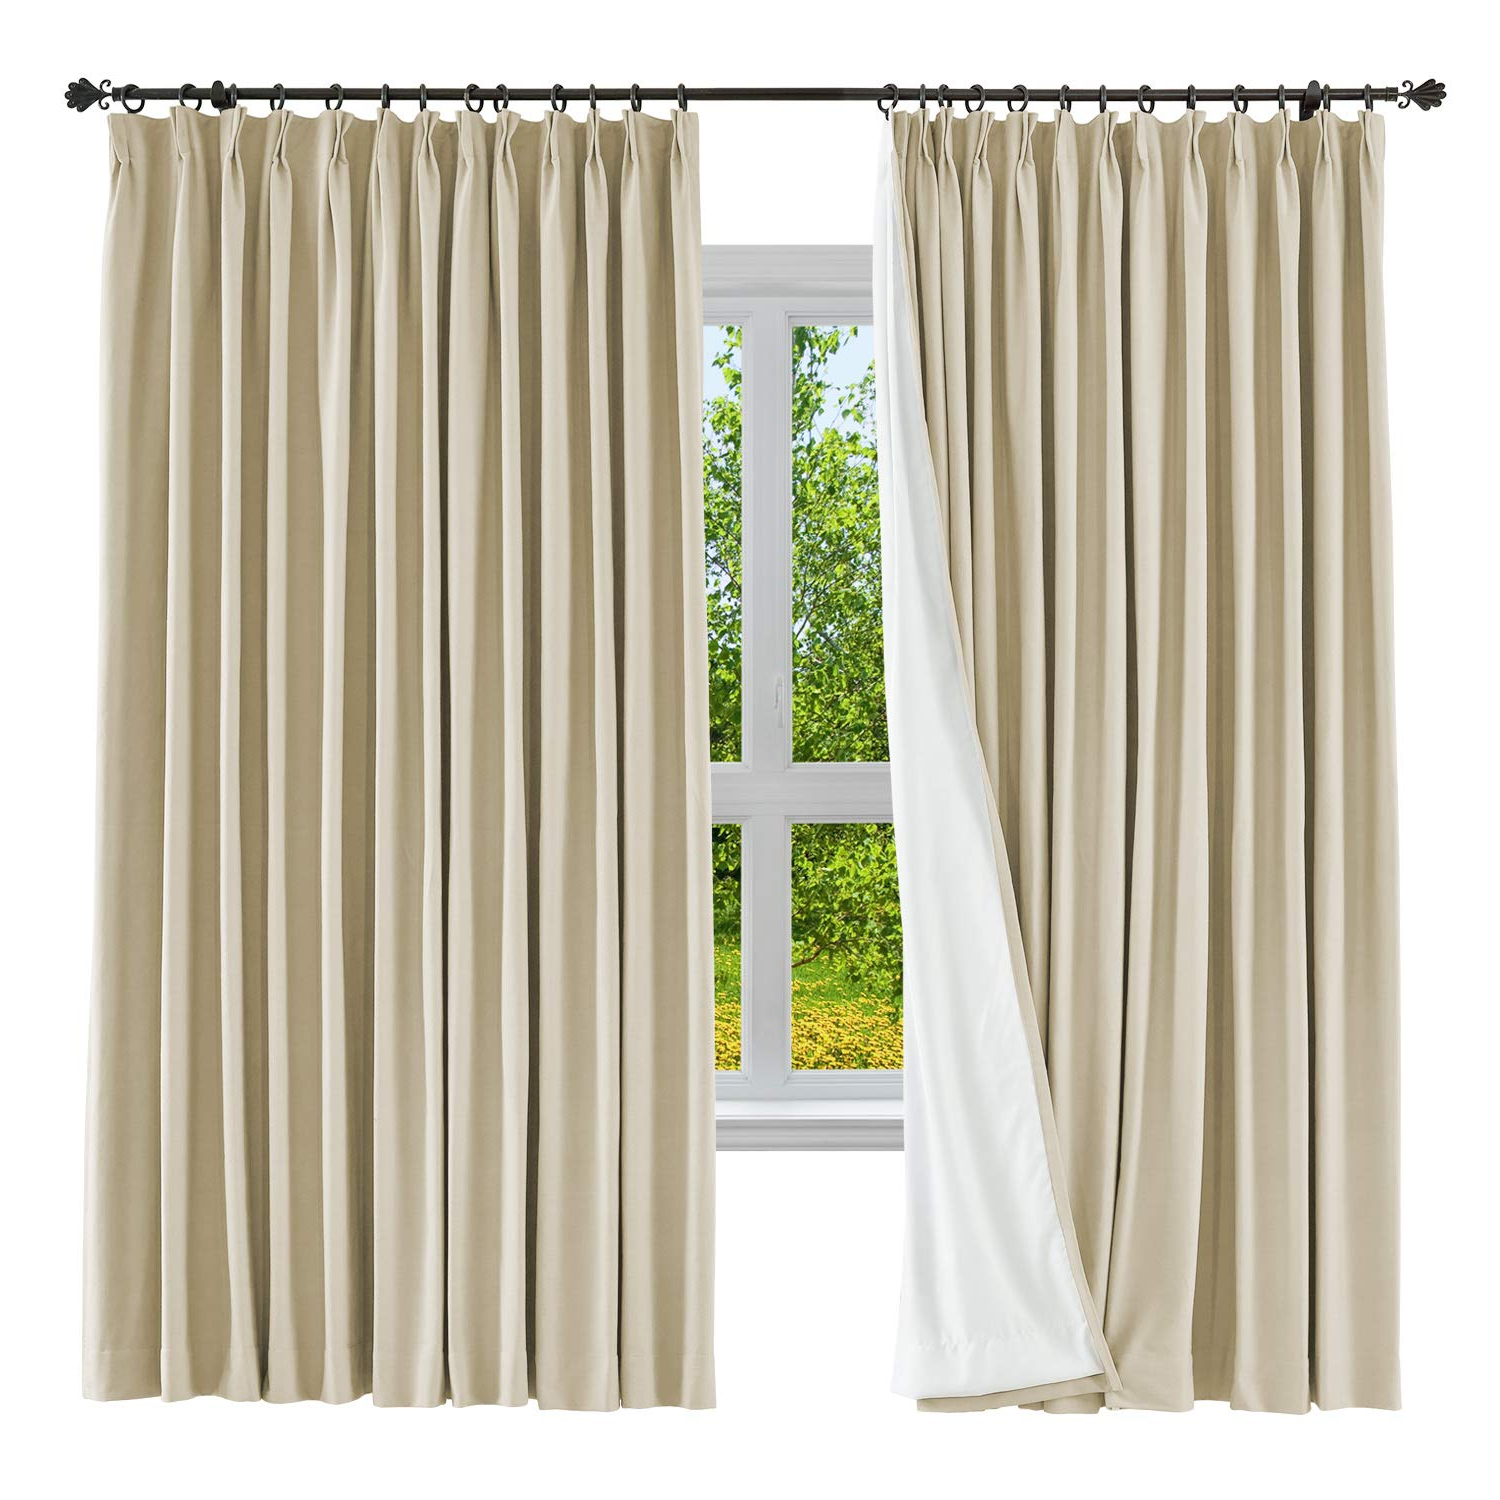 Latest Solid Country Cotton Linen Weave Curtain Panels Throughout Cololeaf Blackout Curtain Panel Cotton Linen Drape Window (View 20 of 20)